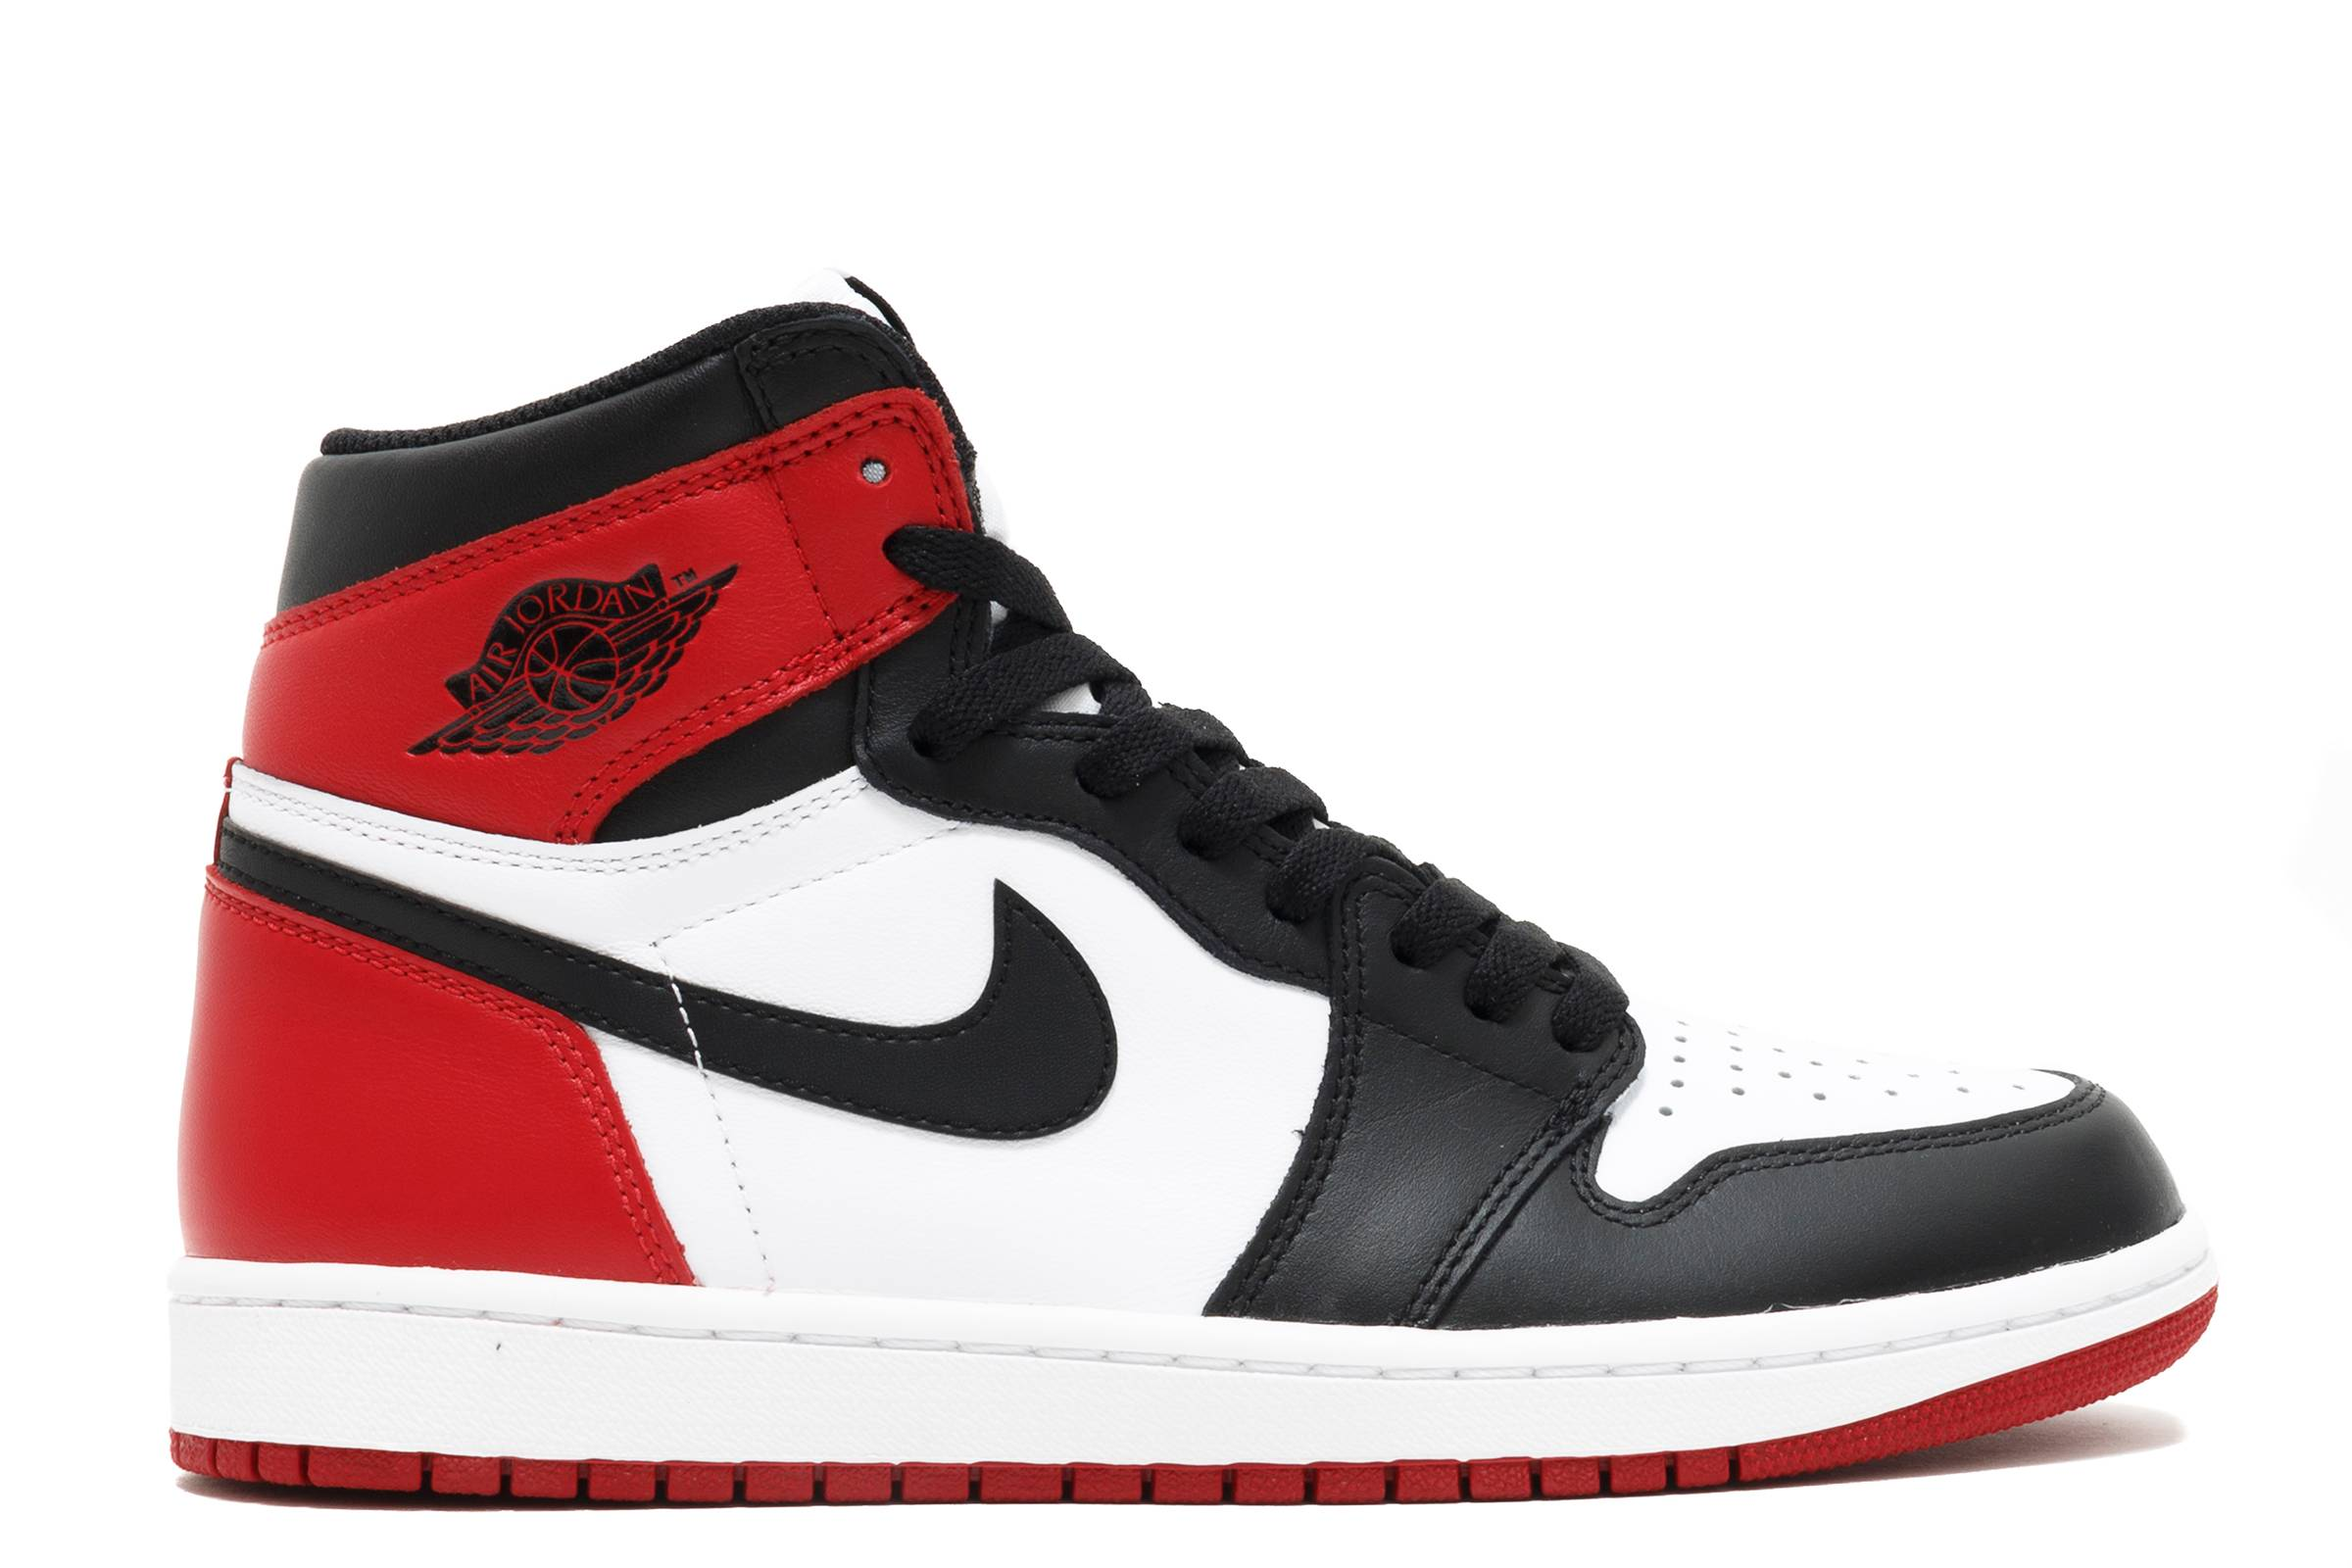 113801de4cce The One That Started It All  A History of the Jordan 1 - Jordan 1 ...